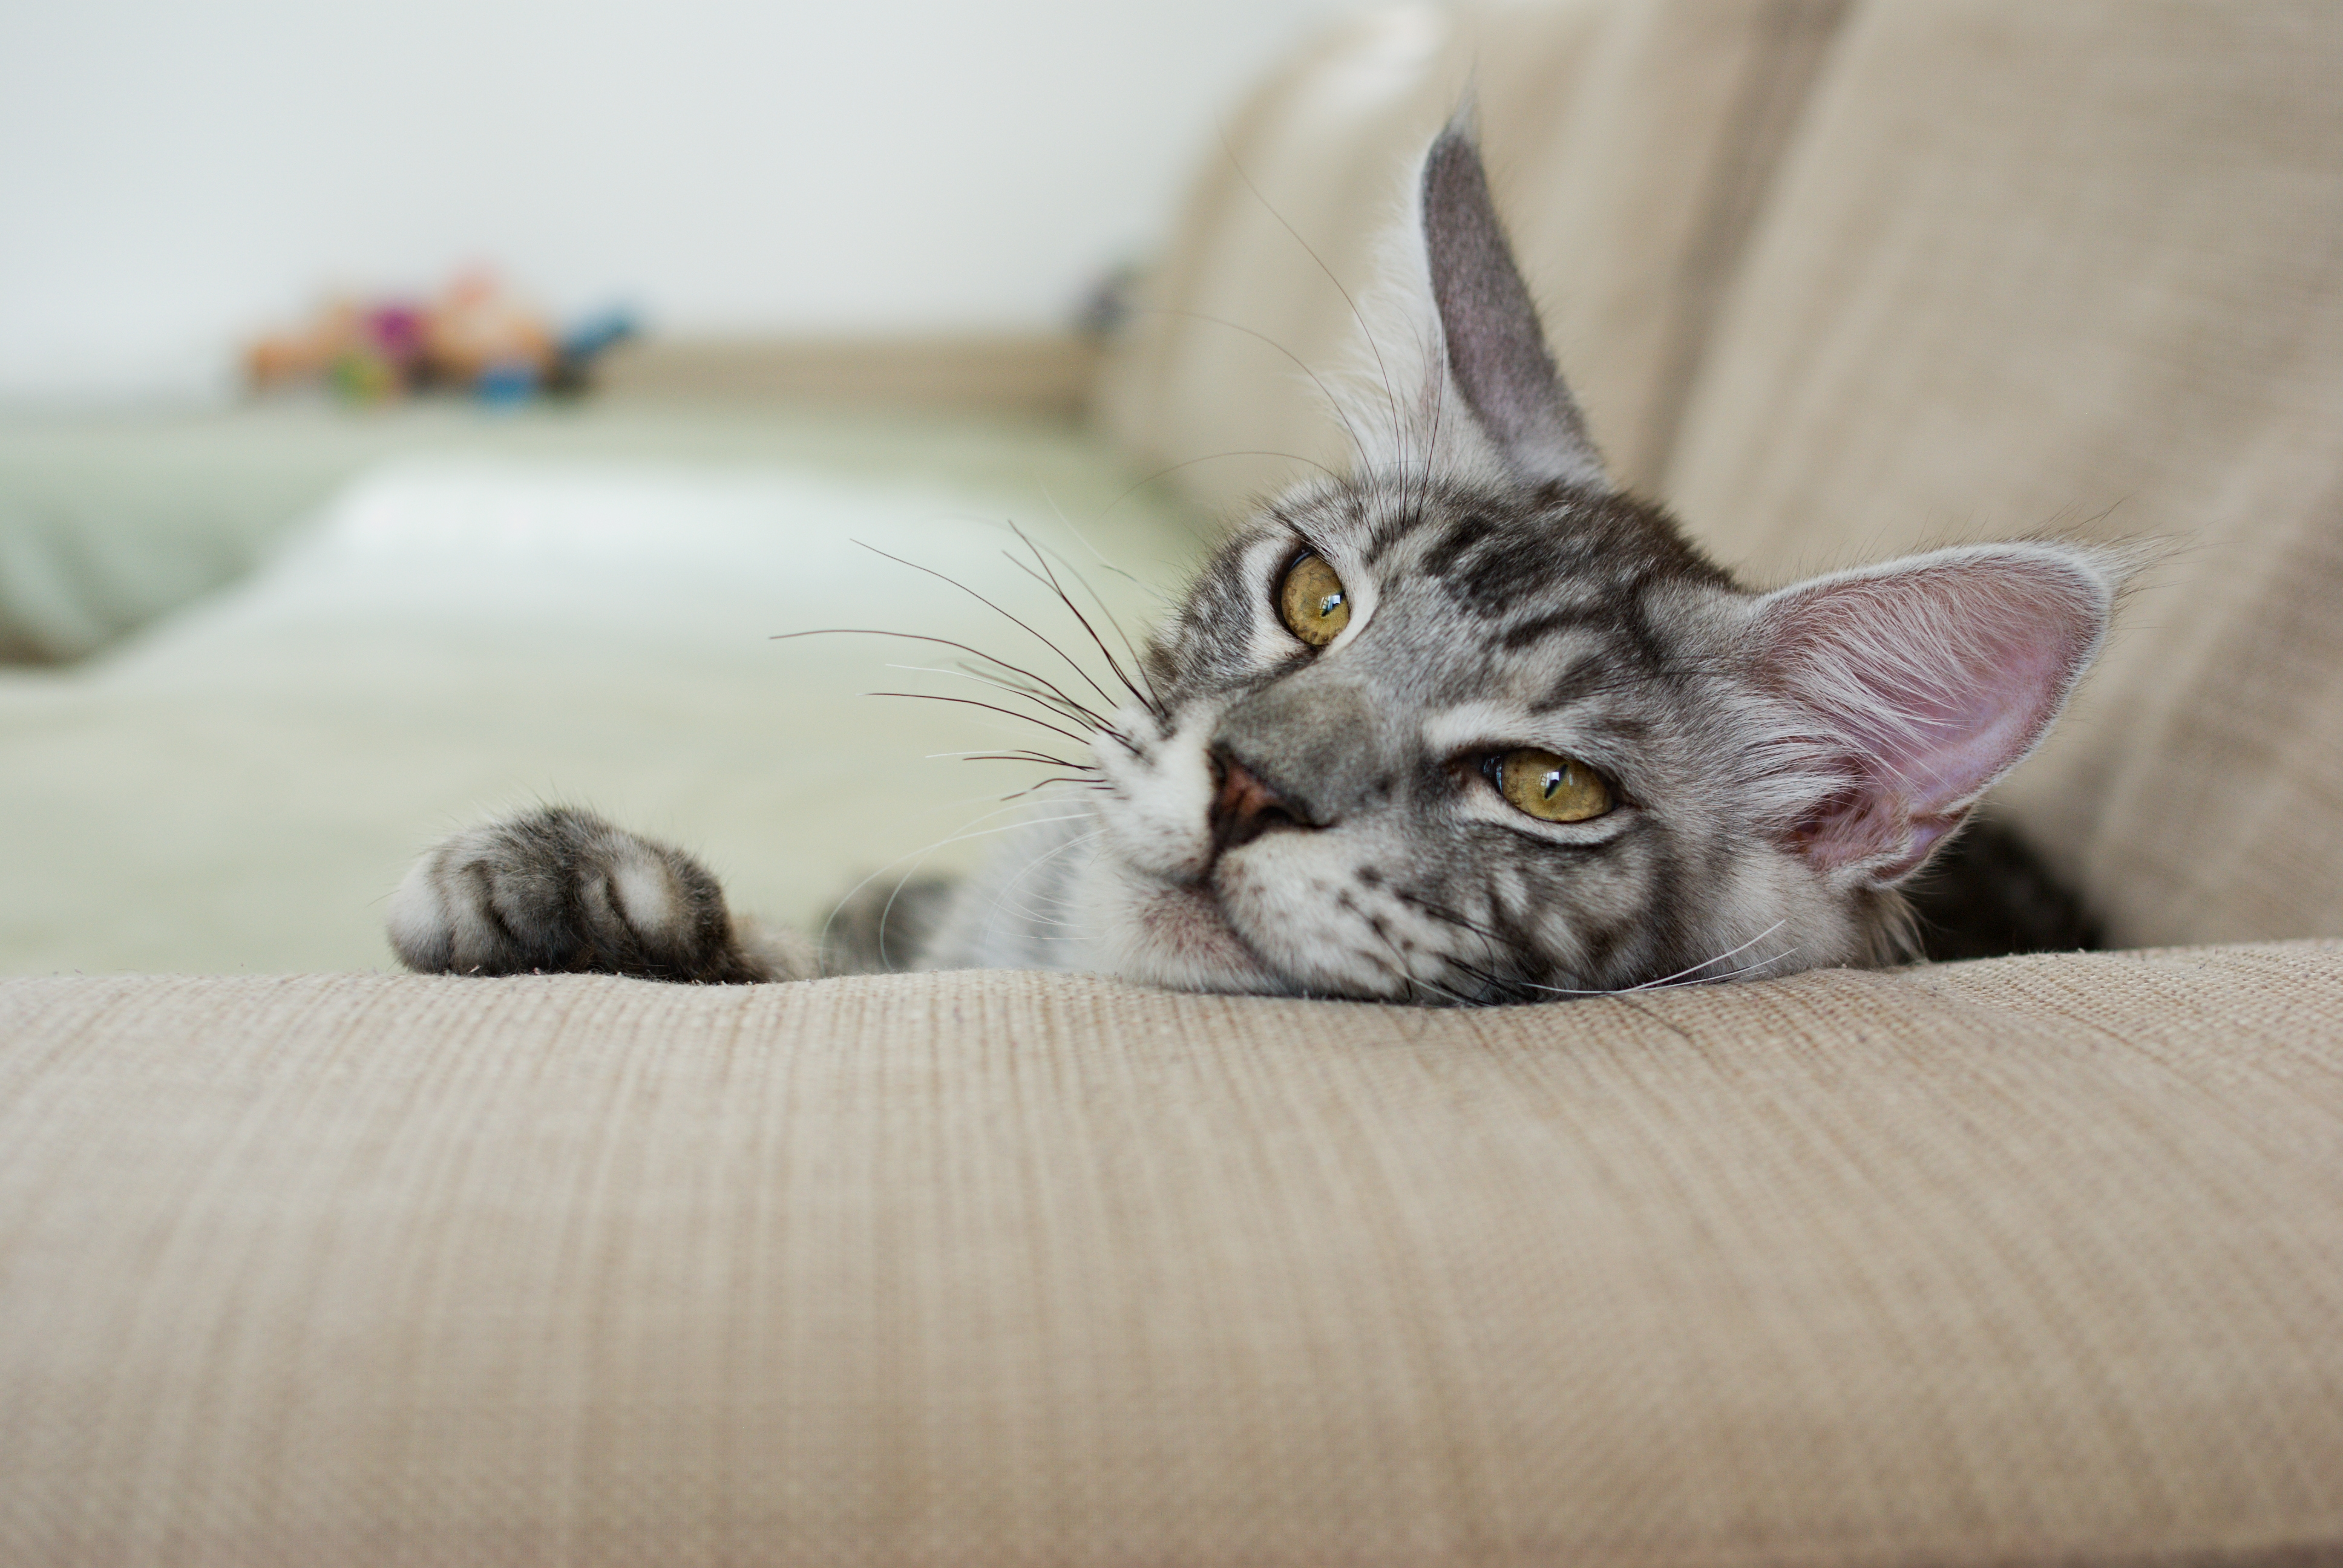 Is Your Kitty Alone Often? Look for These Signs That a Cat